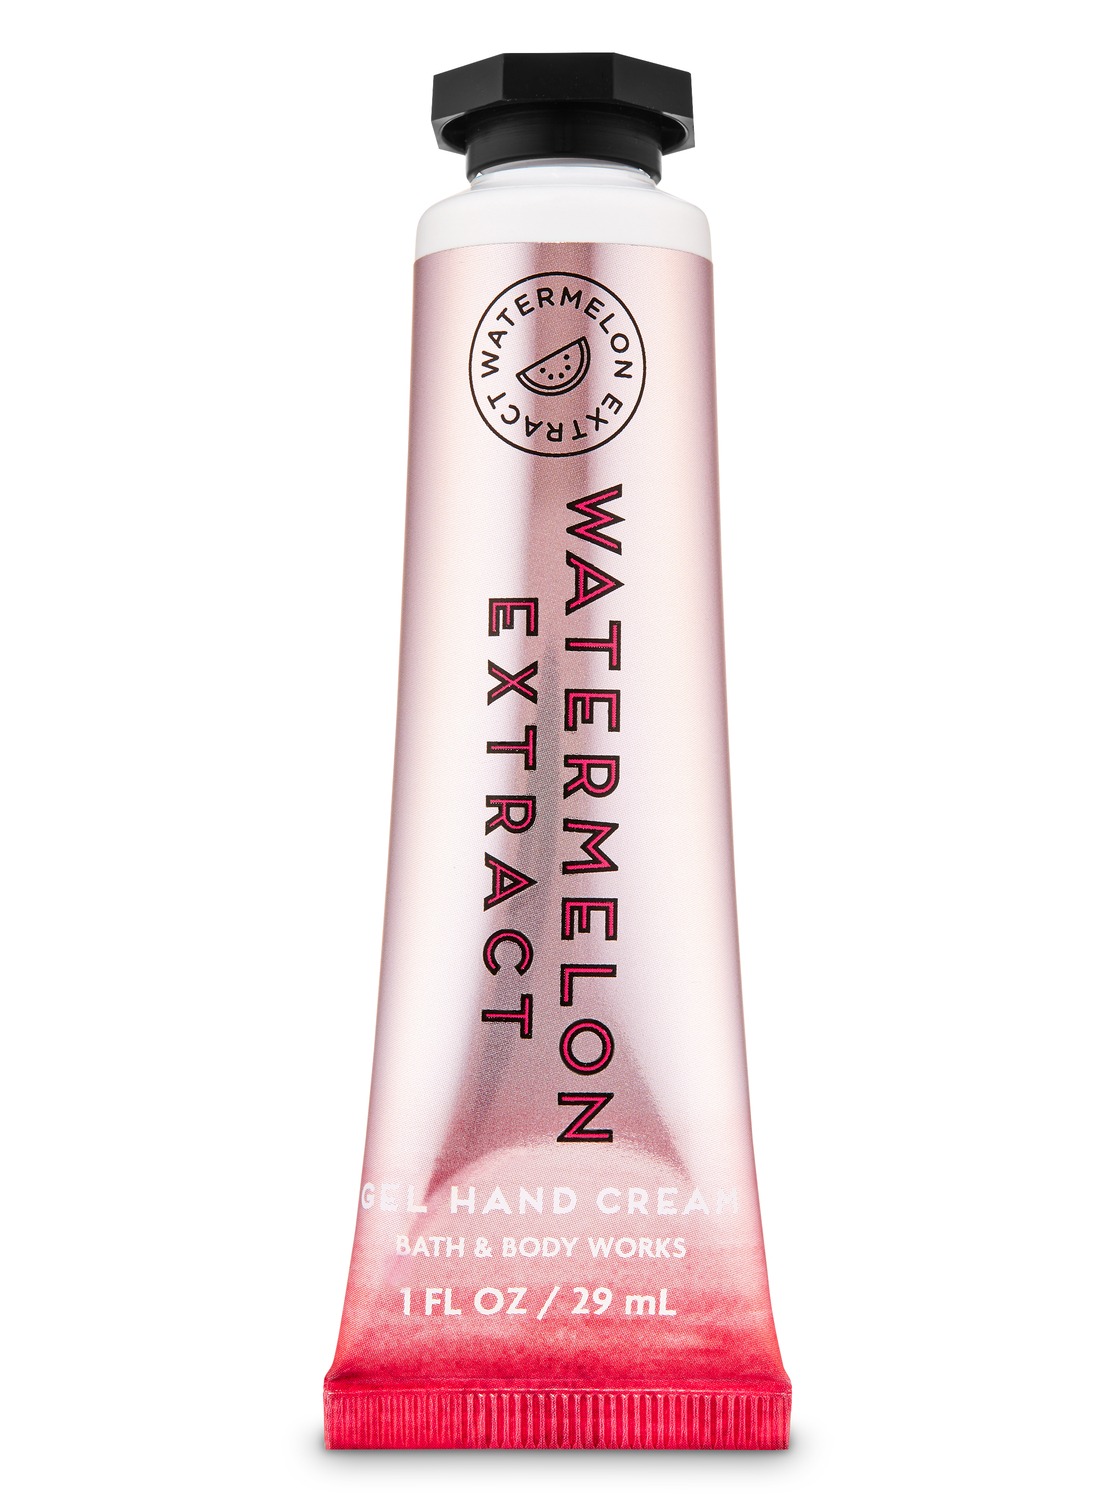 Watermelon Extract Gel Hand Cream Bath And Body Works Big Clearancesale 3days Only All 1 99 Hand Cream Bath And Body Works Bath And Body